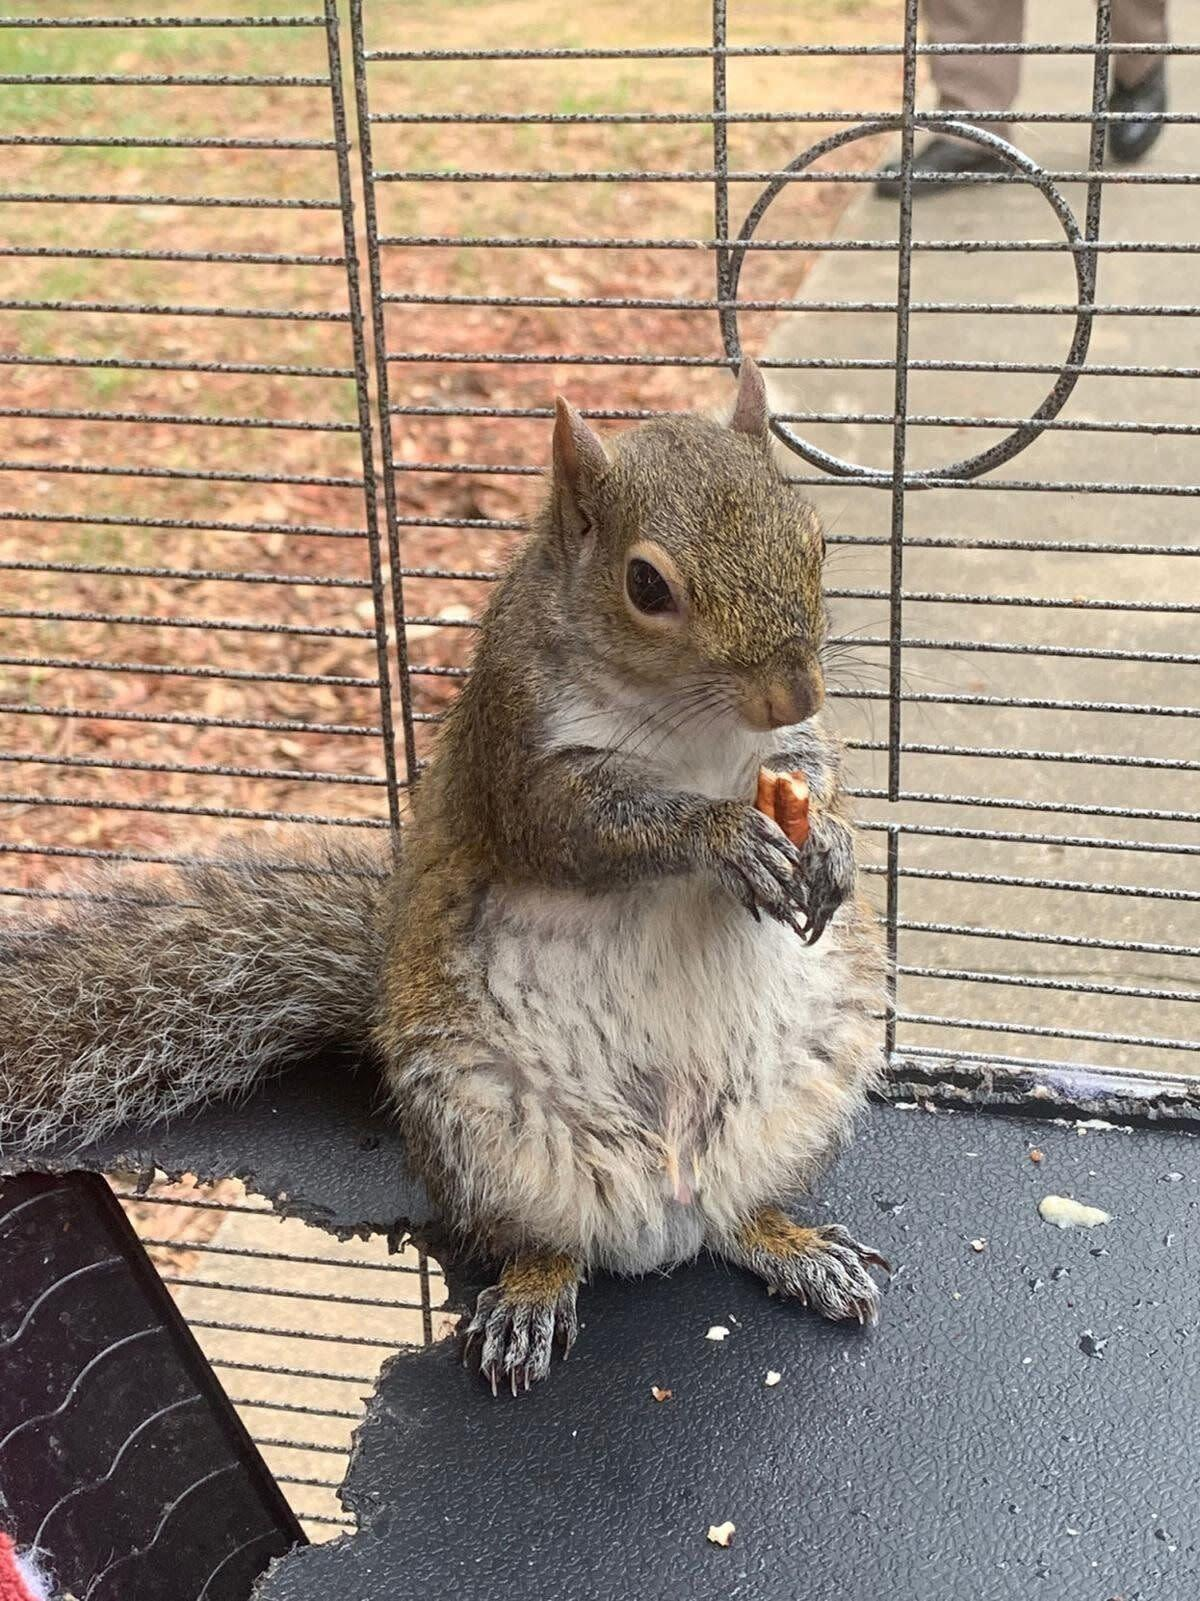 This is the so-called attack squirrel Limestone County sheriff's deputies seized in a drug raid Monday. (Photo: Limestone County Sheriff's Office)